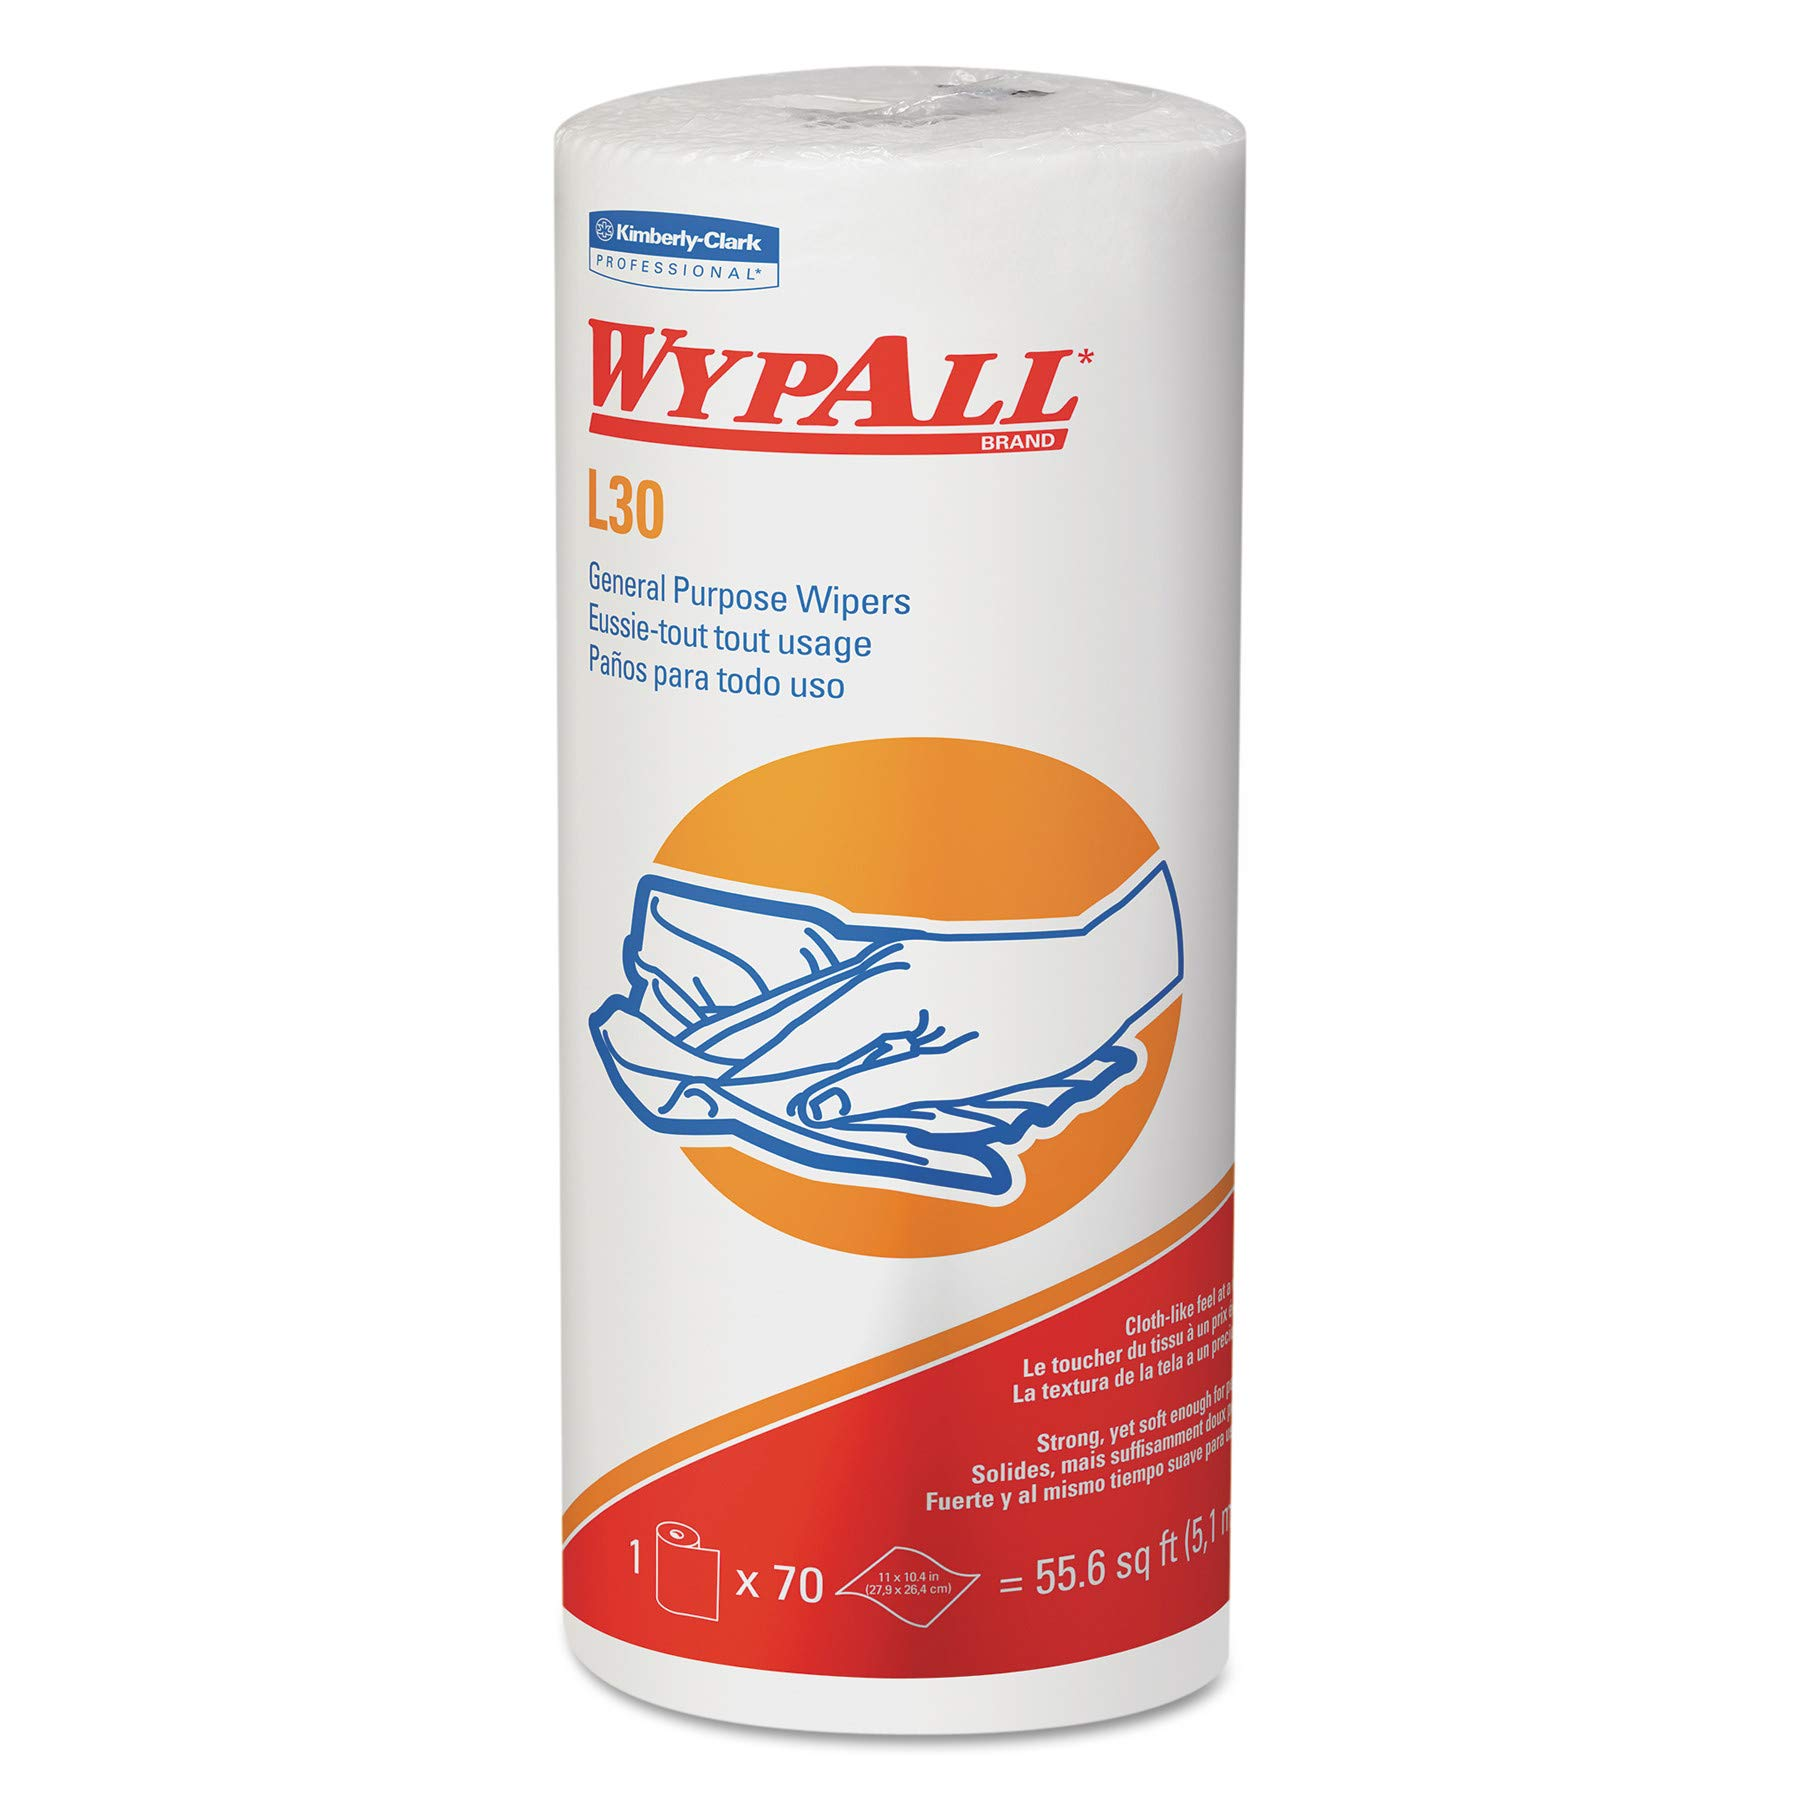 WypAll 05843 L30 Towels, 11 x 10.4, White (Case of 24) by Wypall